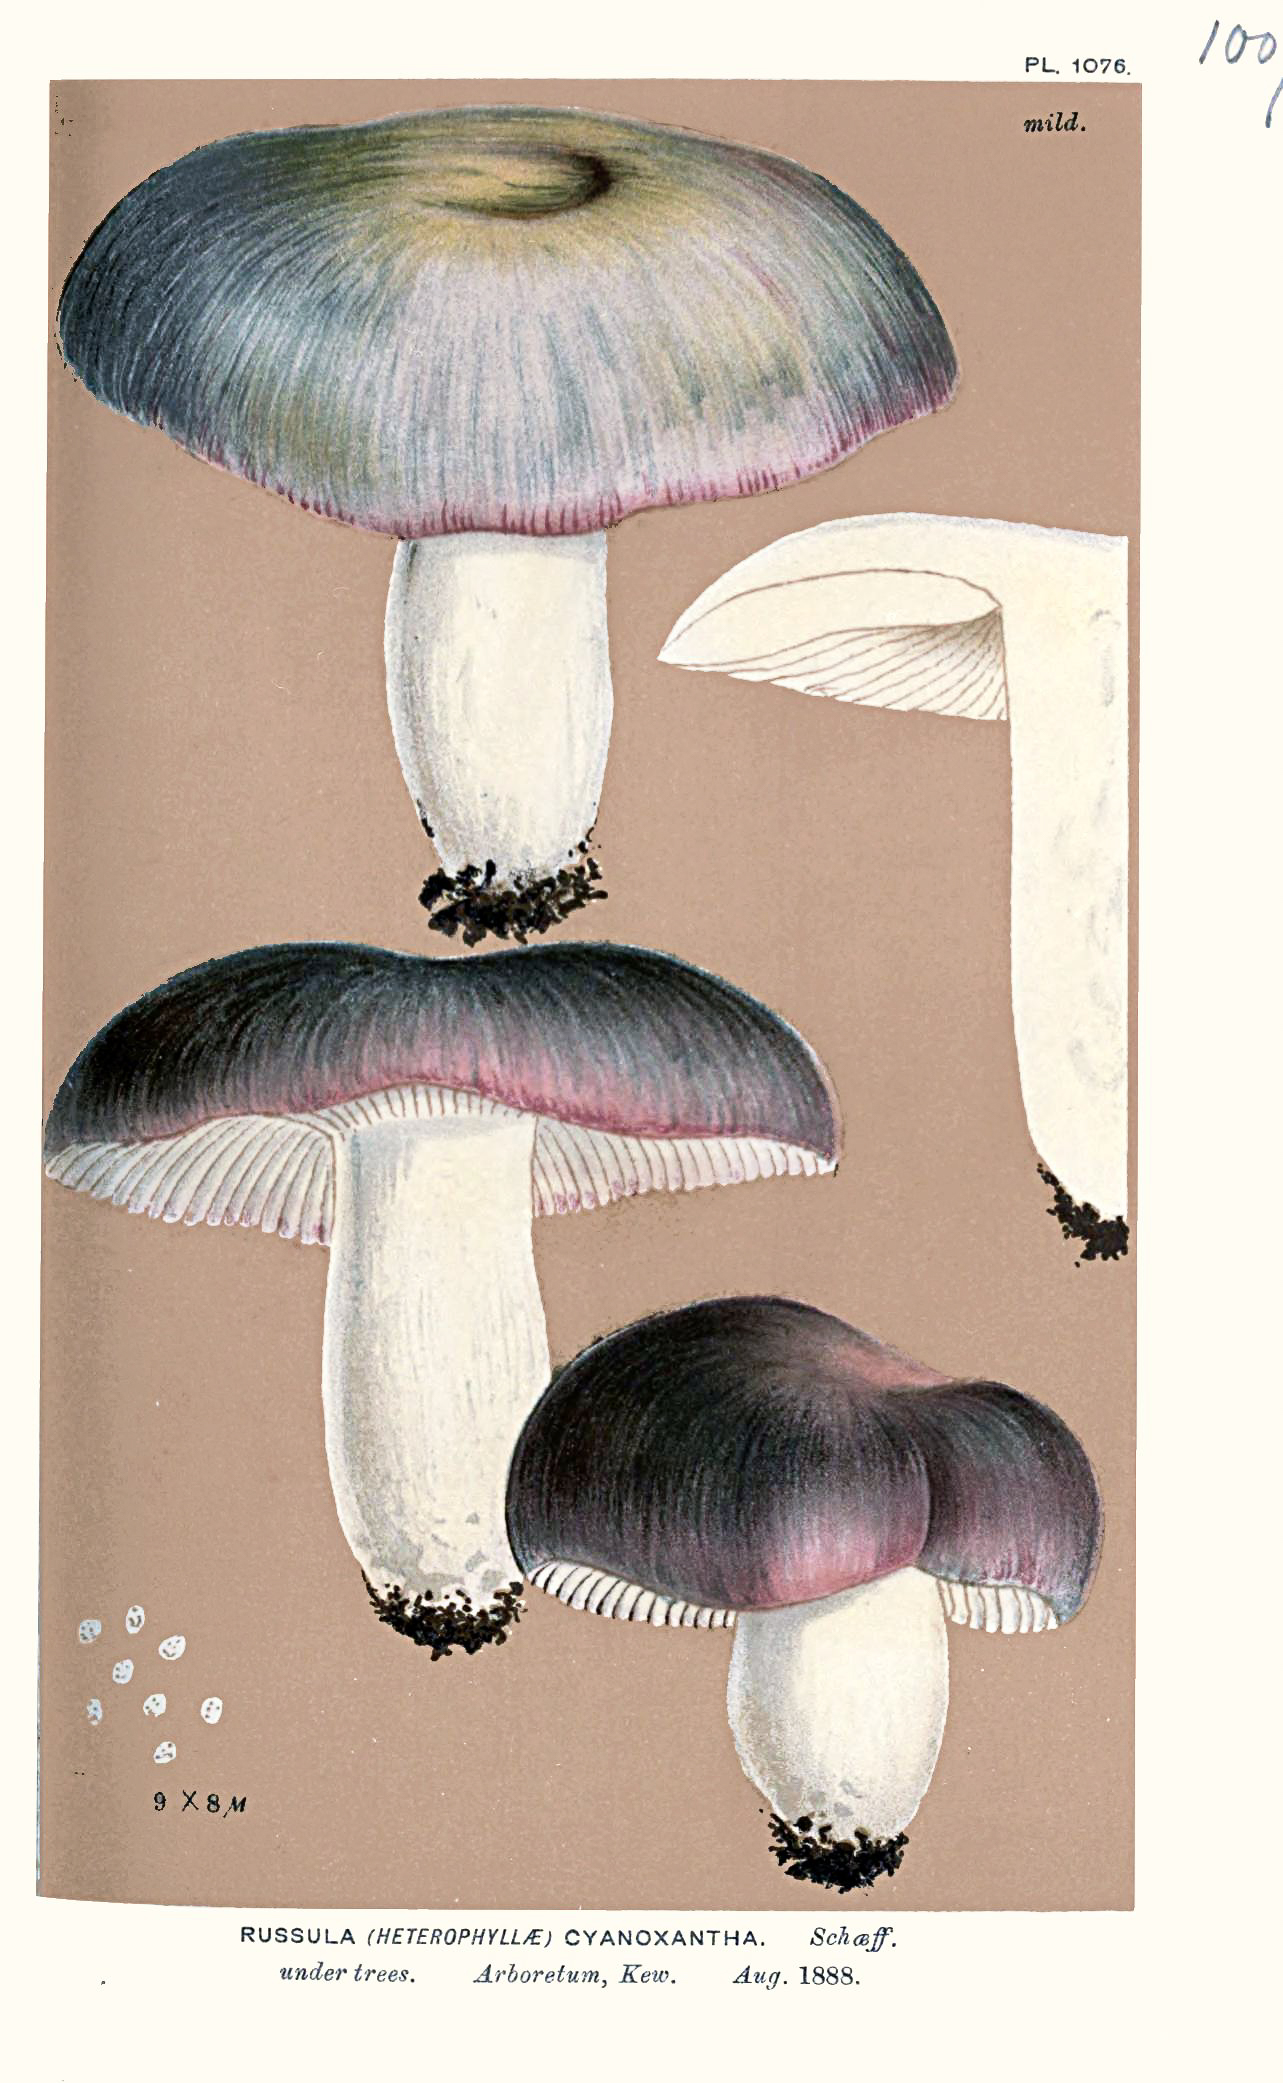 Russula cyanoxantha - The Hall of Einar